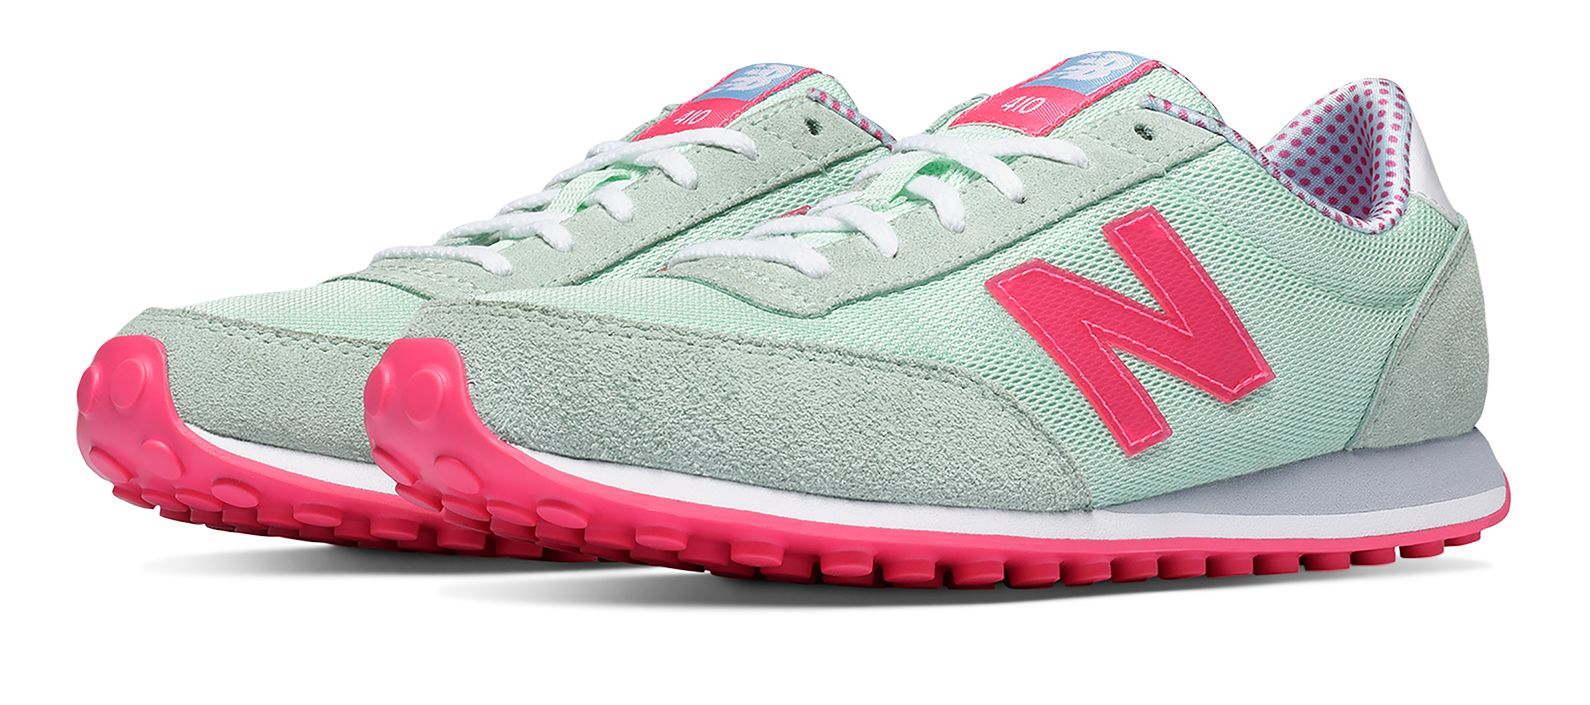 new balance 373 grey with teal and pink